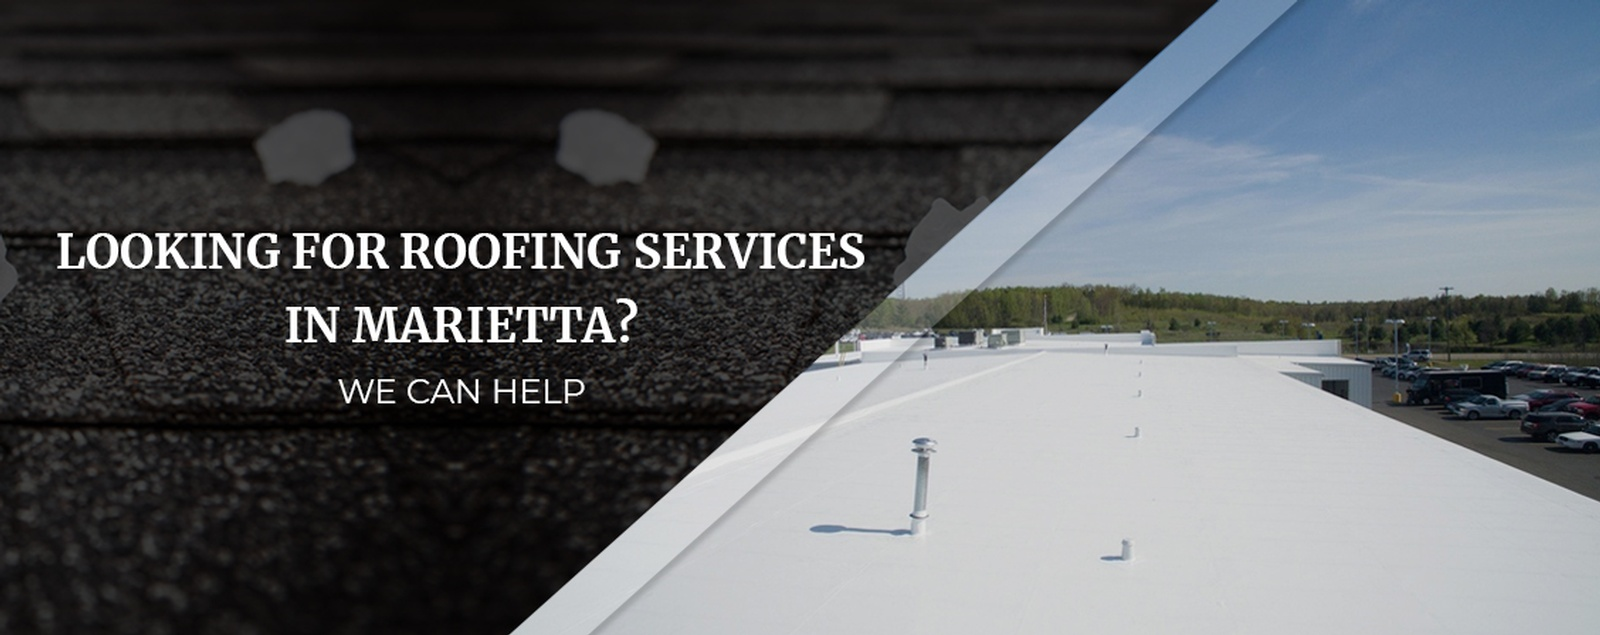 Looking For Roofing Services In Marietta  We Can Help